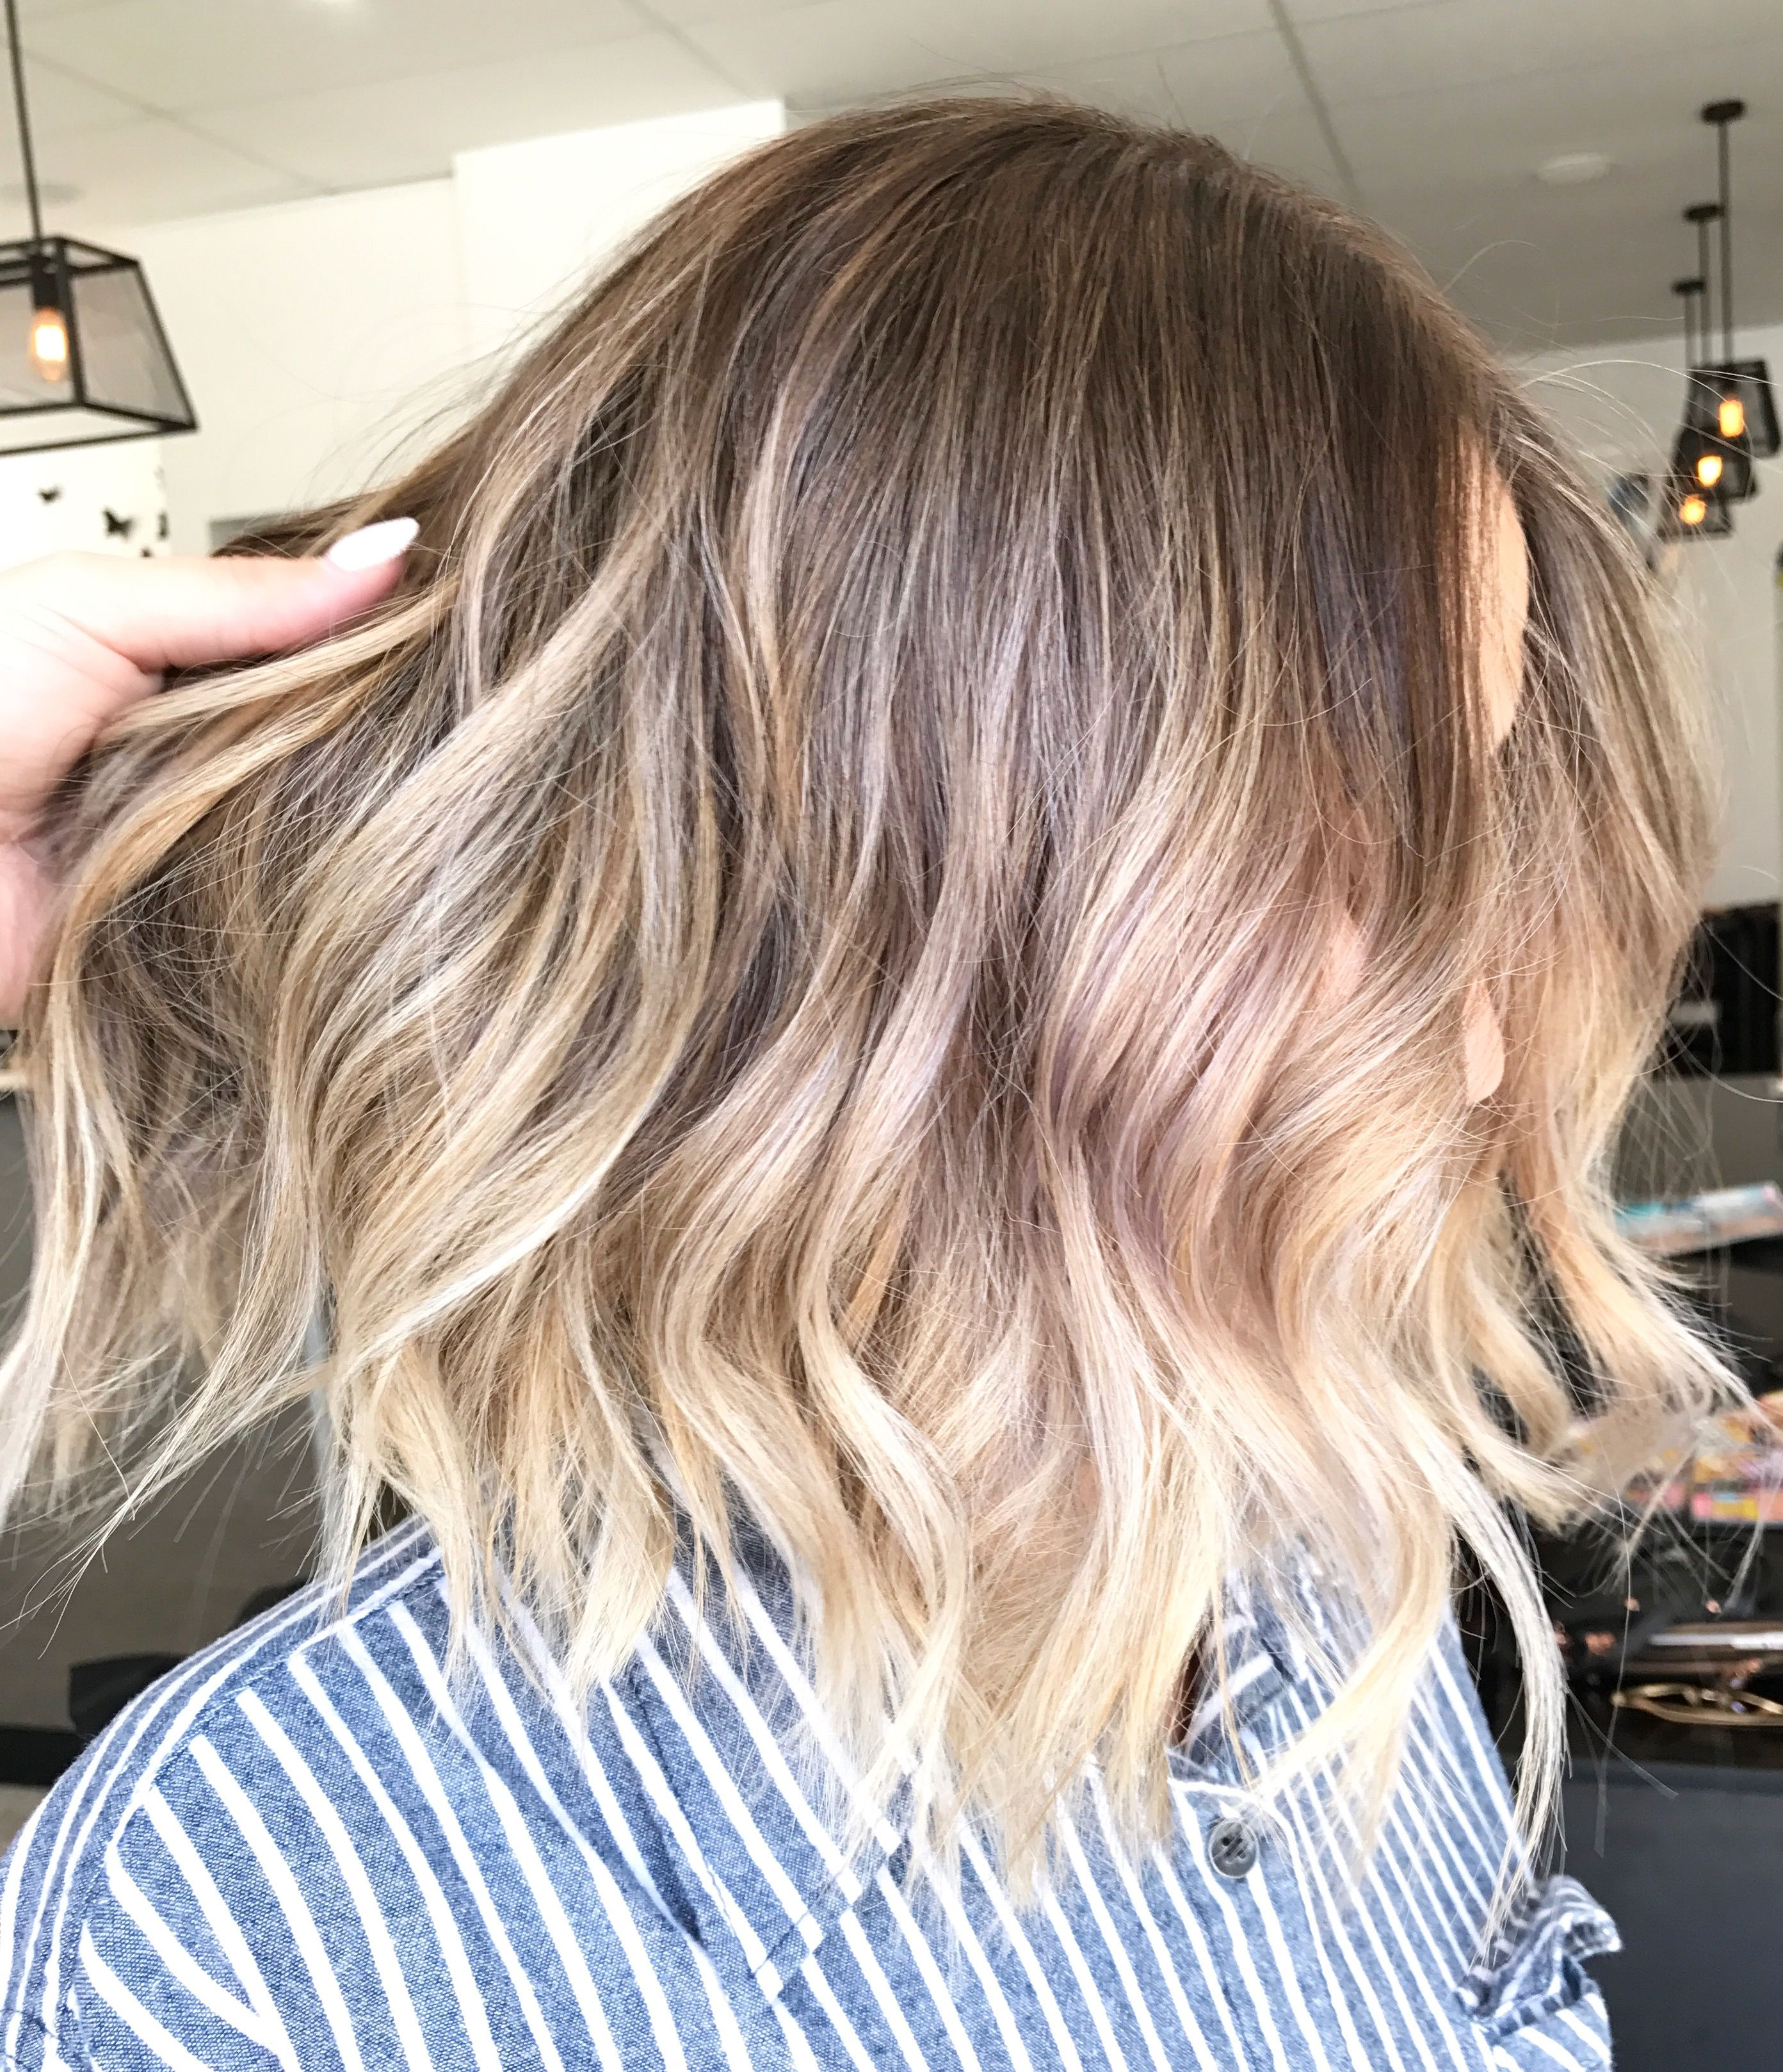 Instagram Kaitlinjadehairartistry Hair Lived In Hair Colour Blonde Bronde Brunette Golden Tones Balayage F Short Hair Balayage Hair Styles Blonde Balayage